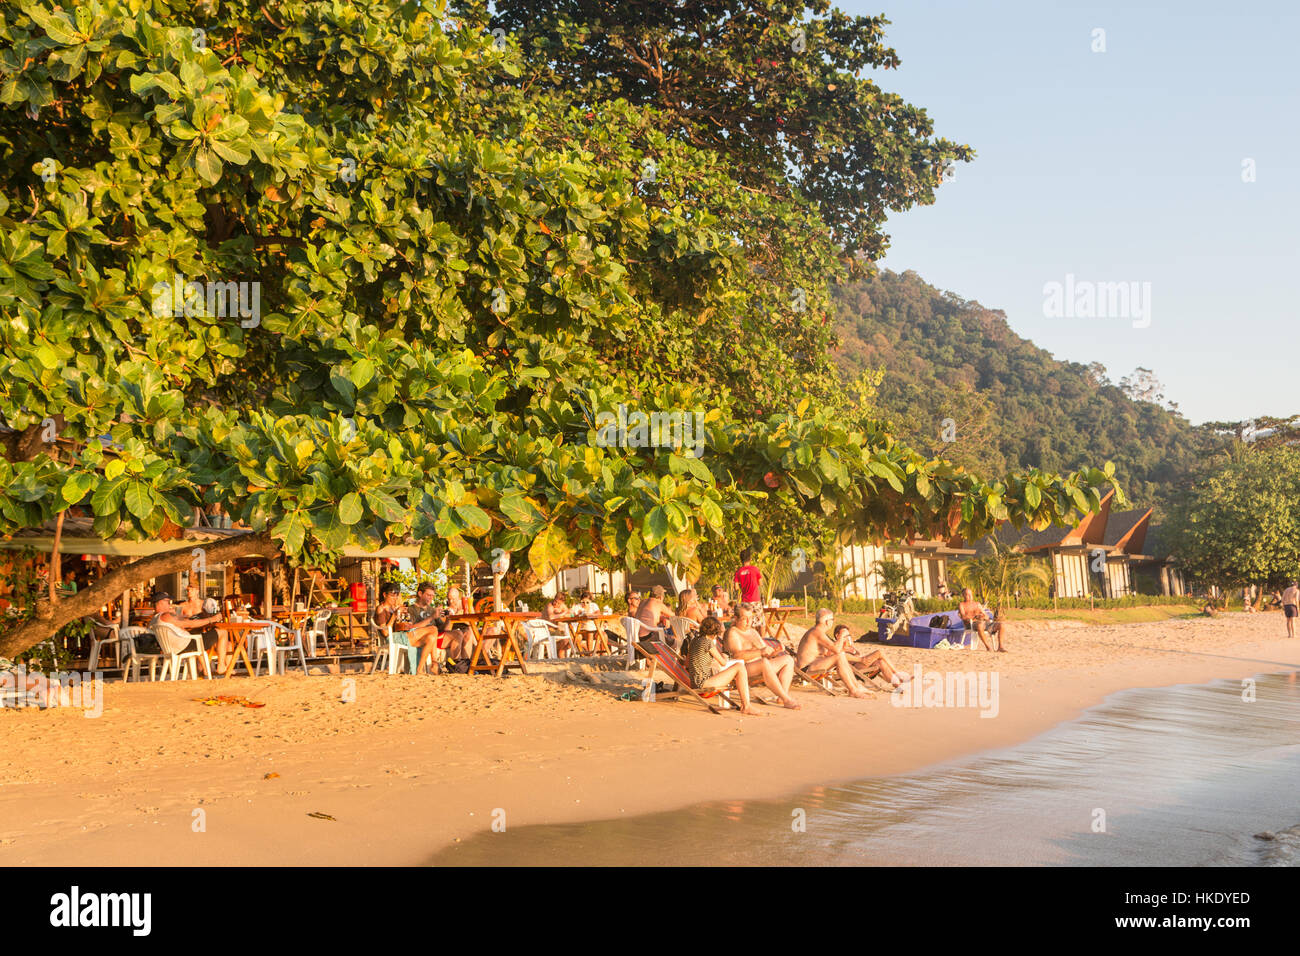 KOH CHANG, THAILAND - DECEMBER 29, 2015: Tourists enjoy a drink in a beach bar during sunset over white sand beach Stock Photo